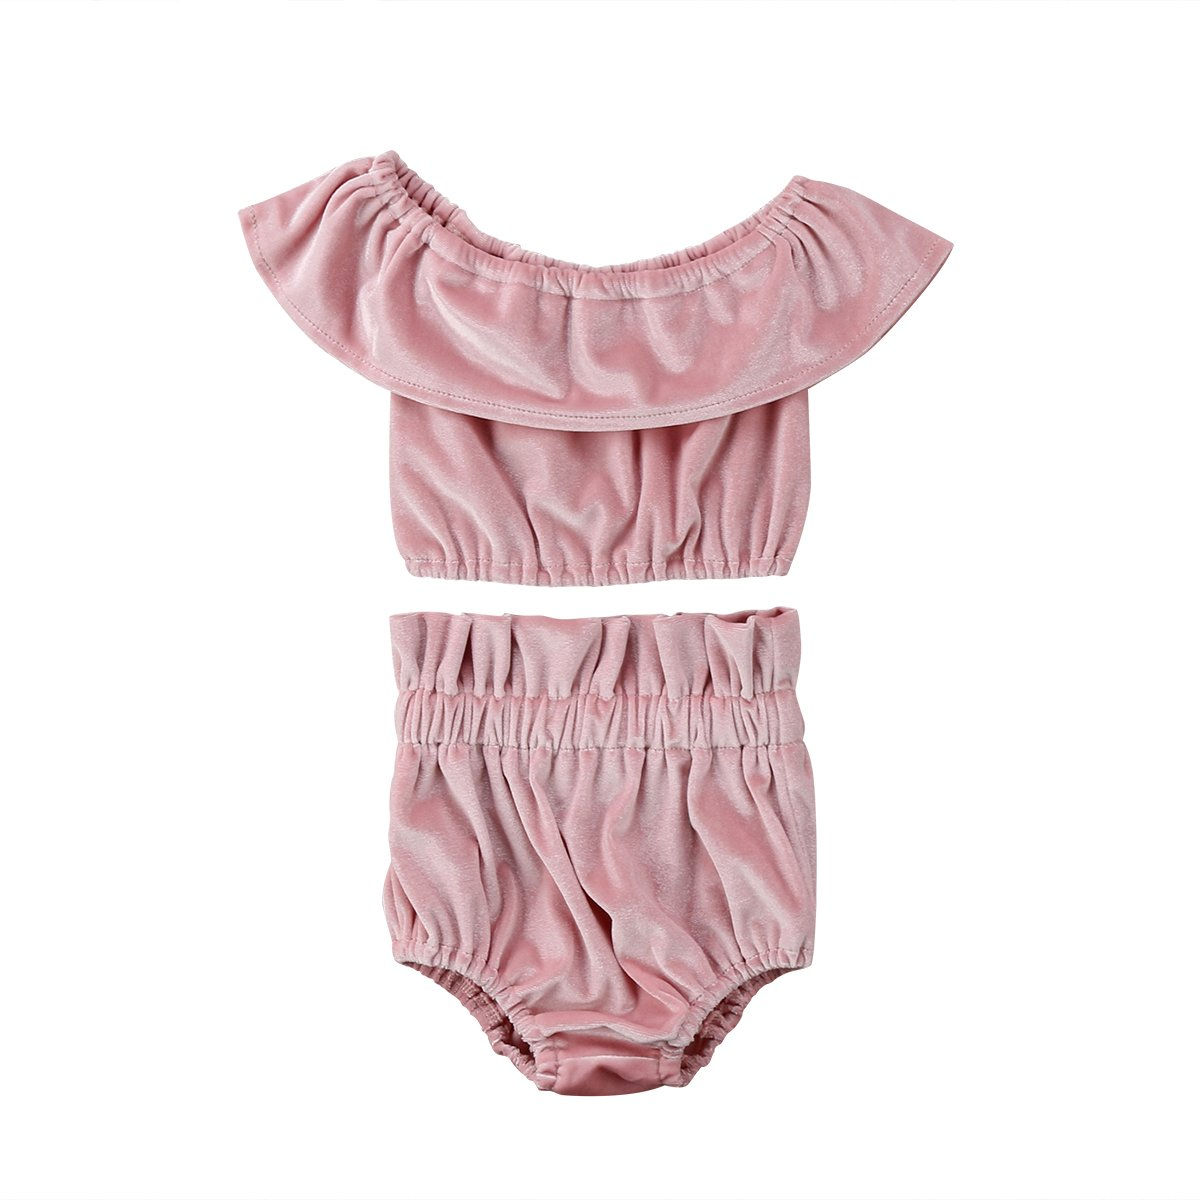 5dd0a2ce0 Material: Velvet, soft and luxurious. Package including: 1x Top+1x Shorts  Beautiful and stylish baby girl velvet off shoulder top with matching  shorts.